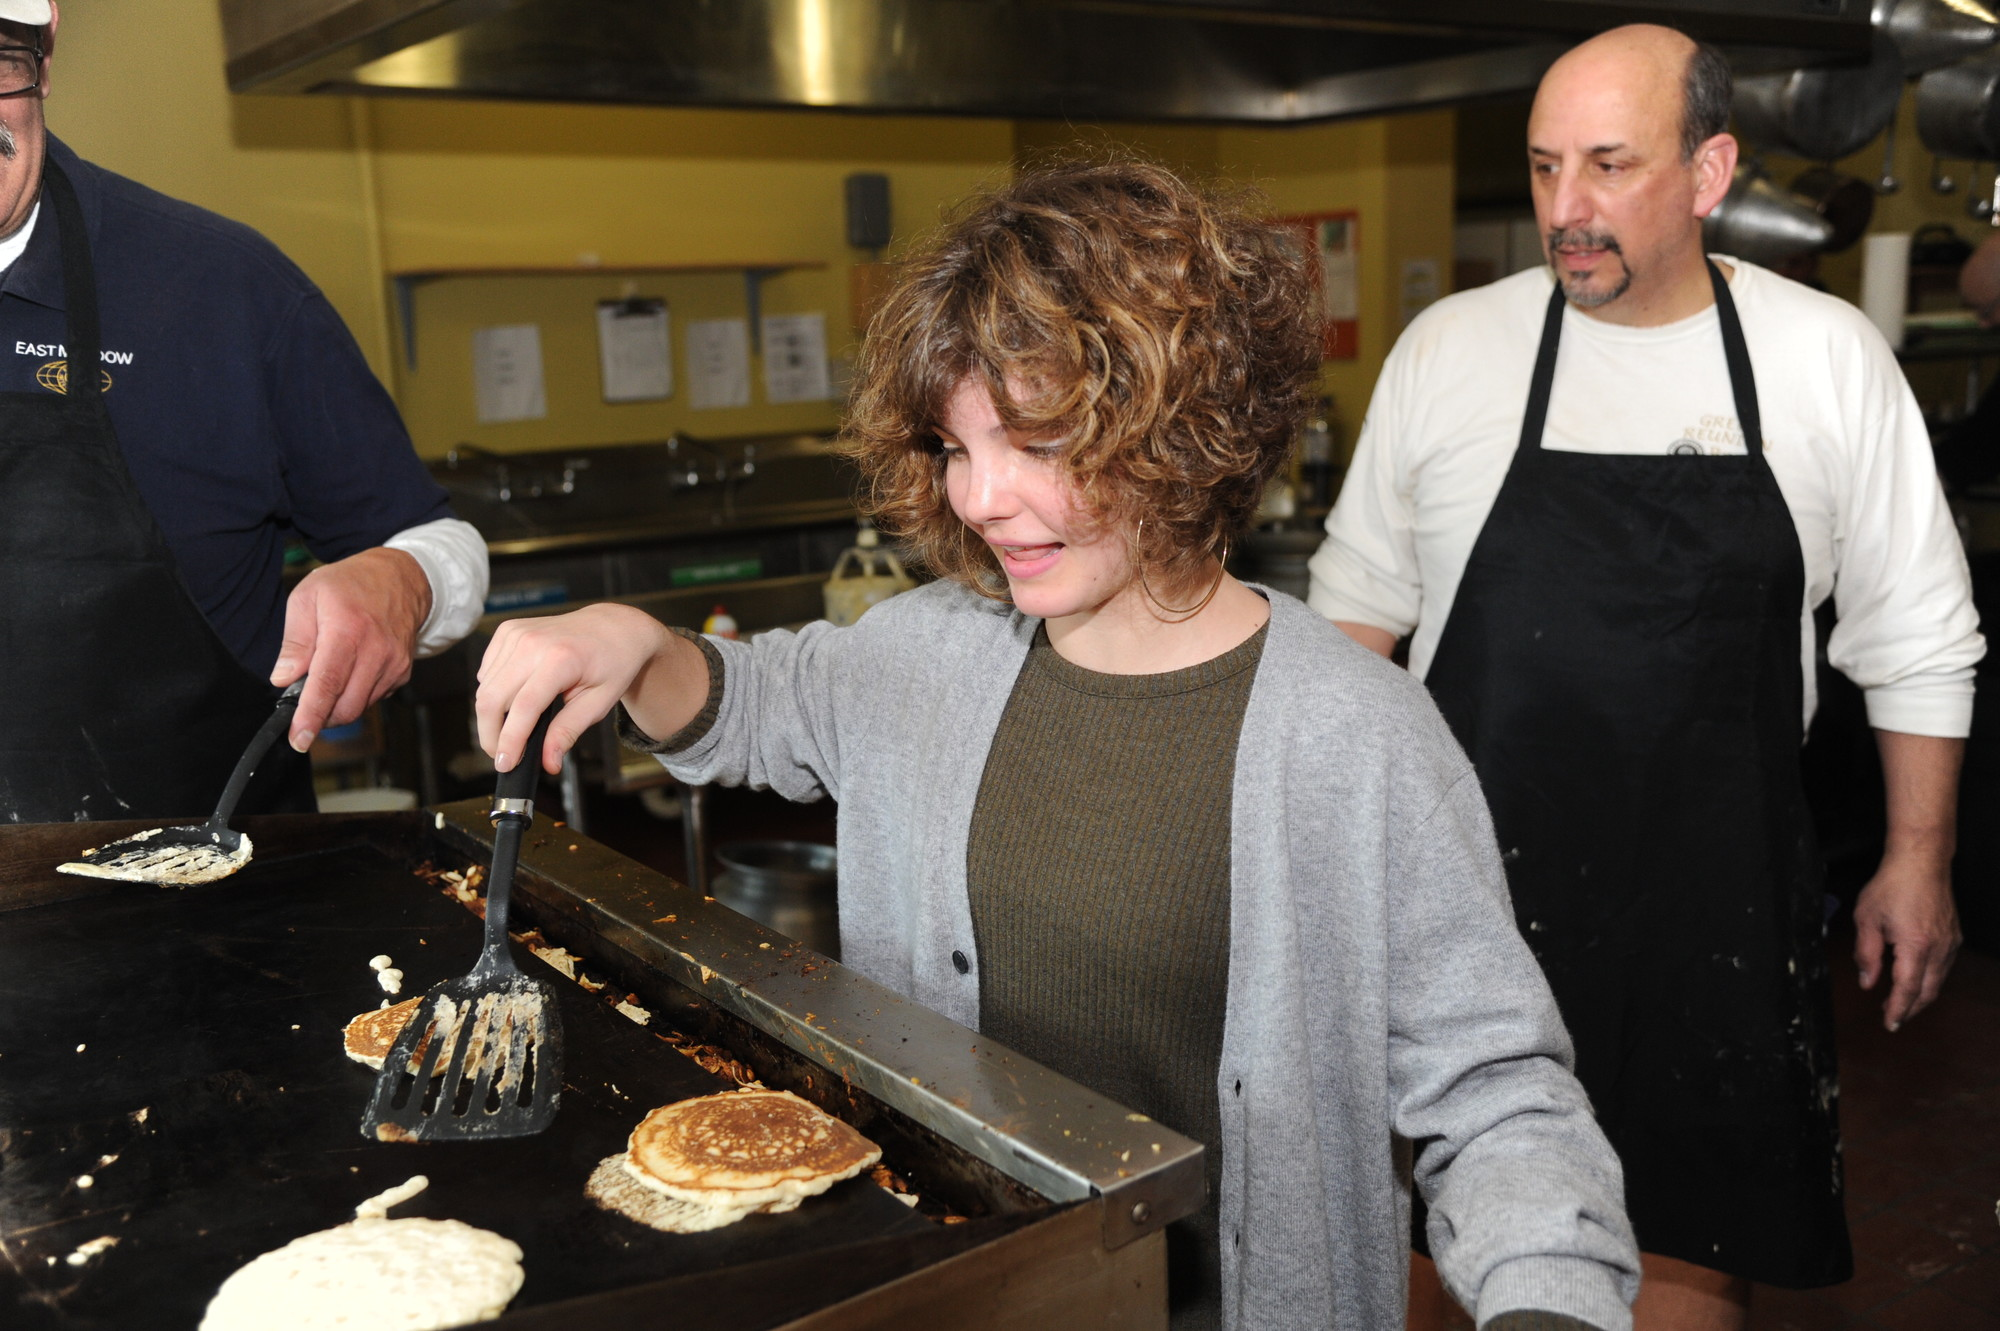 """Gotham"" actress Camren Bocondova tried her hand at flipping pancakes at the annual East Meadow Kiwanis all-you-can-eat breakfast."